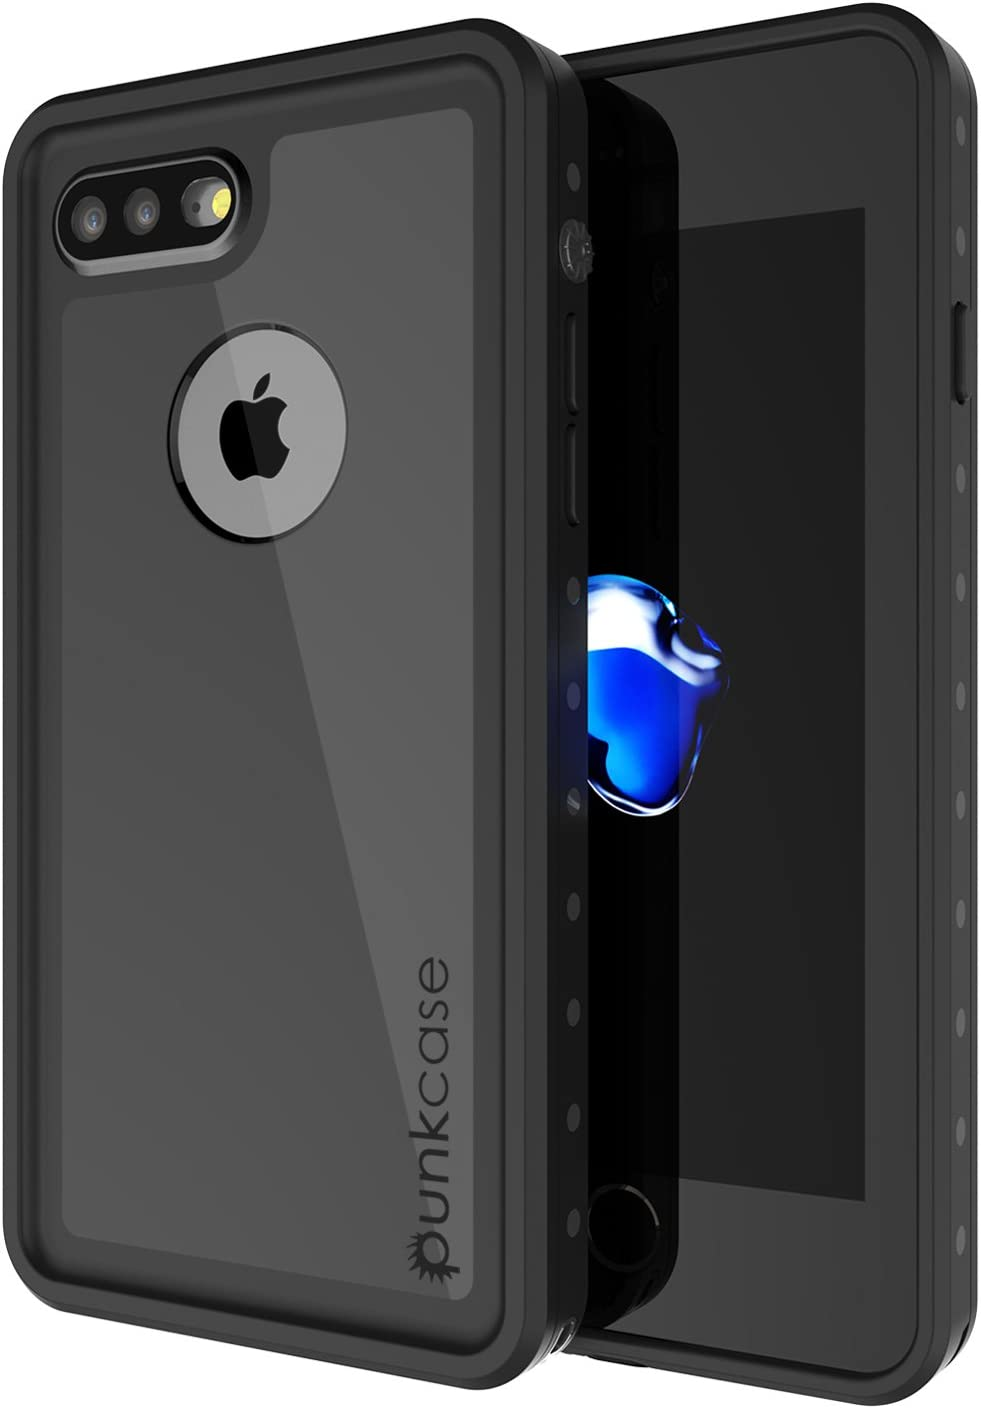 iPhone 7s Plus Waterproof Case, Punkcase [StudStar Series] [Slim Fit] [IP68 Certified] [Shockproof] [Dirtproof] [Snowproof] Armor Cover for Apple iPhone 7 Plus & 7s + [Black]